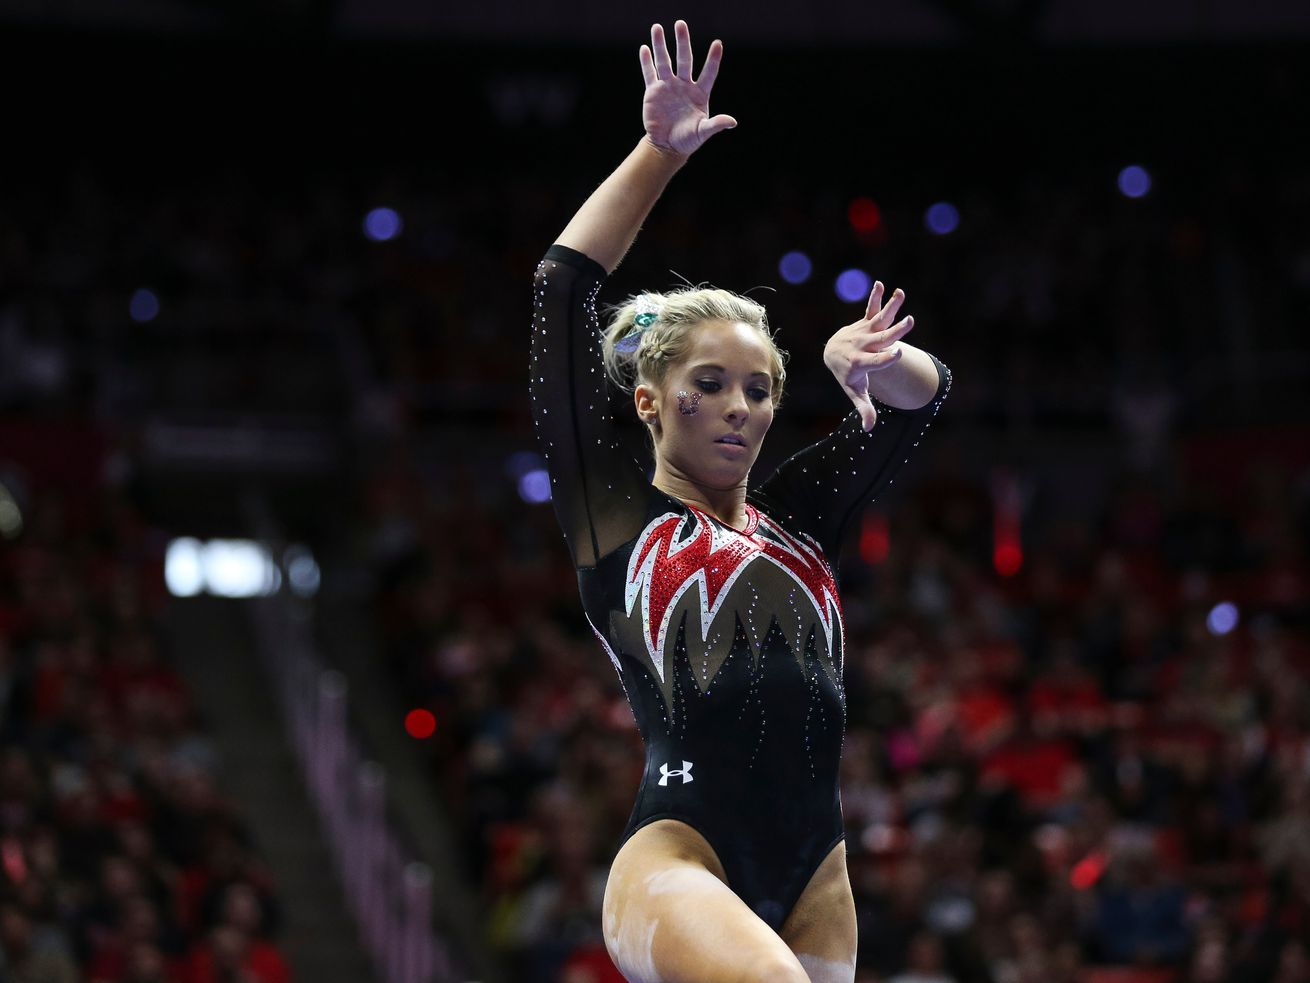 Utah's Mykayla Skinner competes on the beam during a meet against Washington at the Huntsman Center in Salt Lake City on Saturday, Feb. 3, 2018.